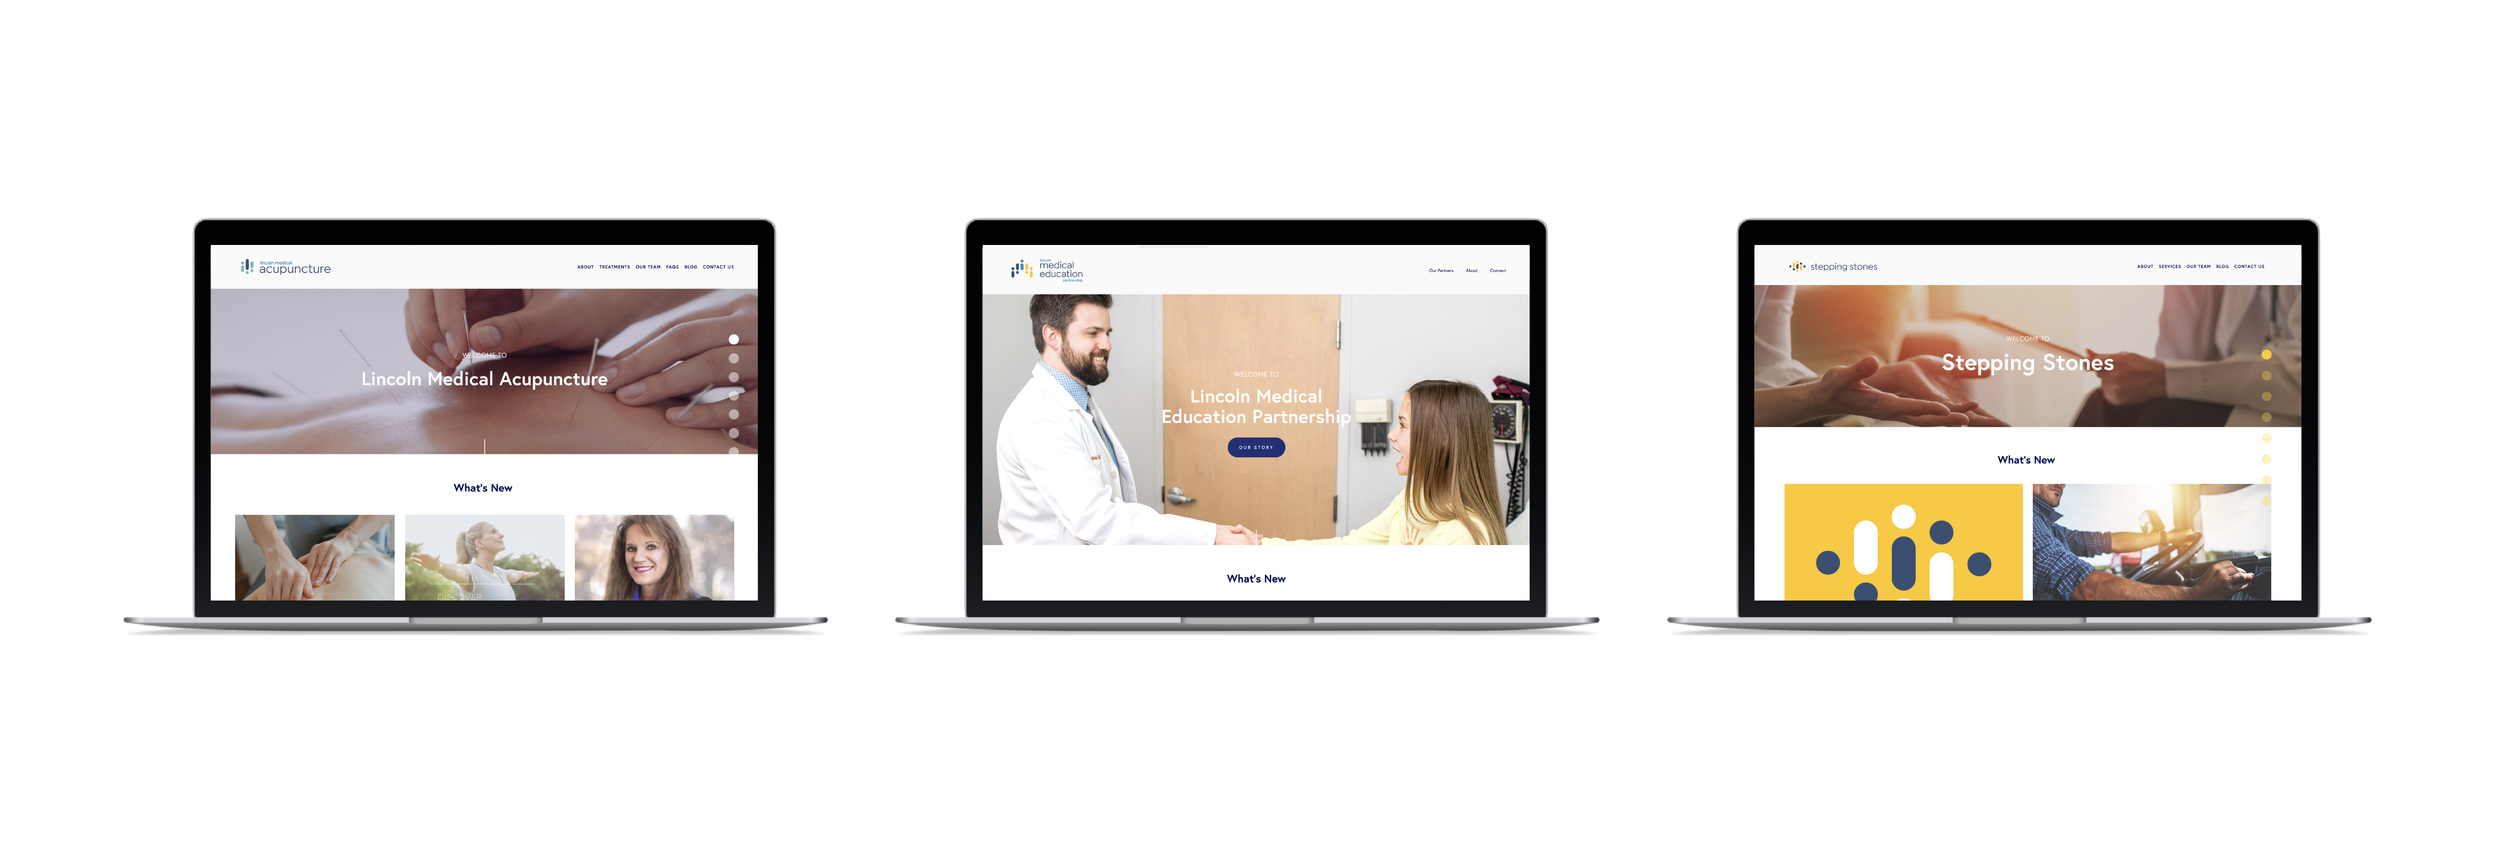 Seventh Image for Lincoln Medical Education Partnership